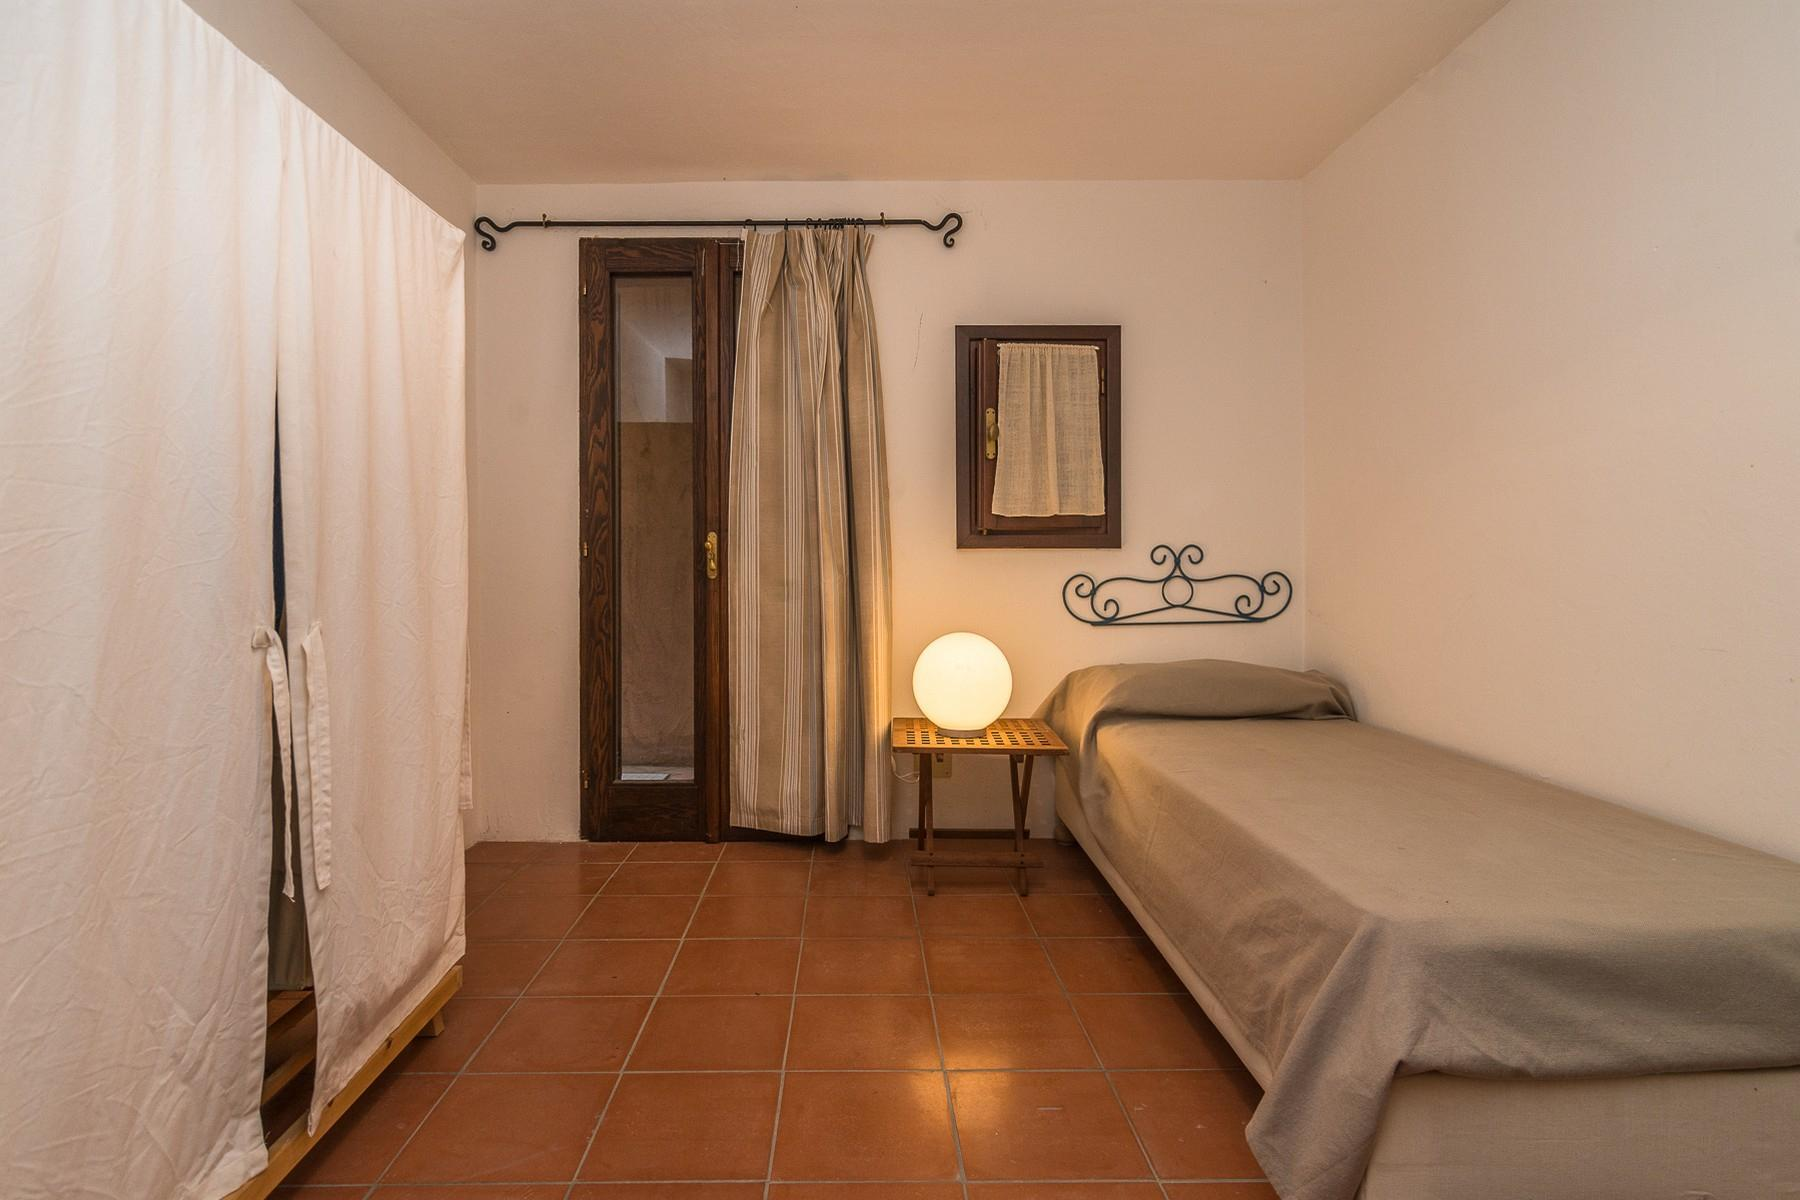 Porto Cervo Cala Granu Delightful Apartment a few steps from the beach - 13